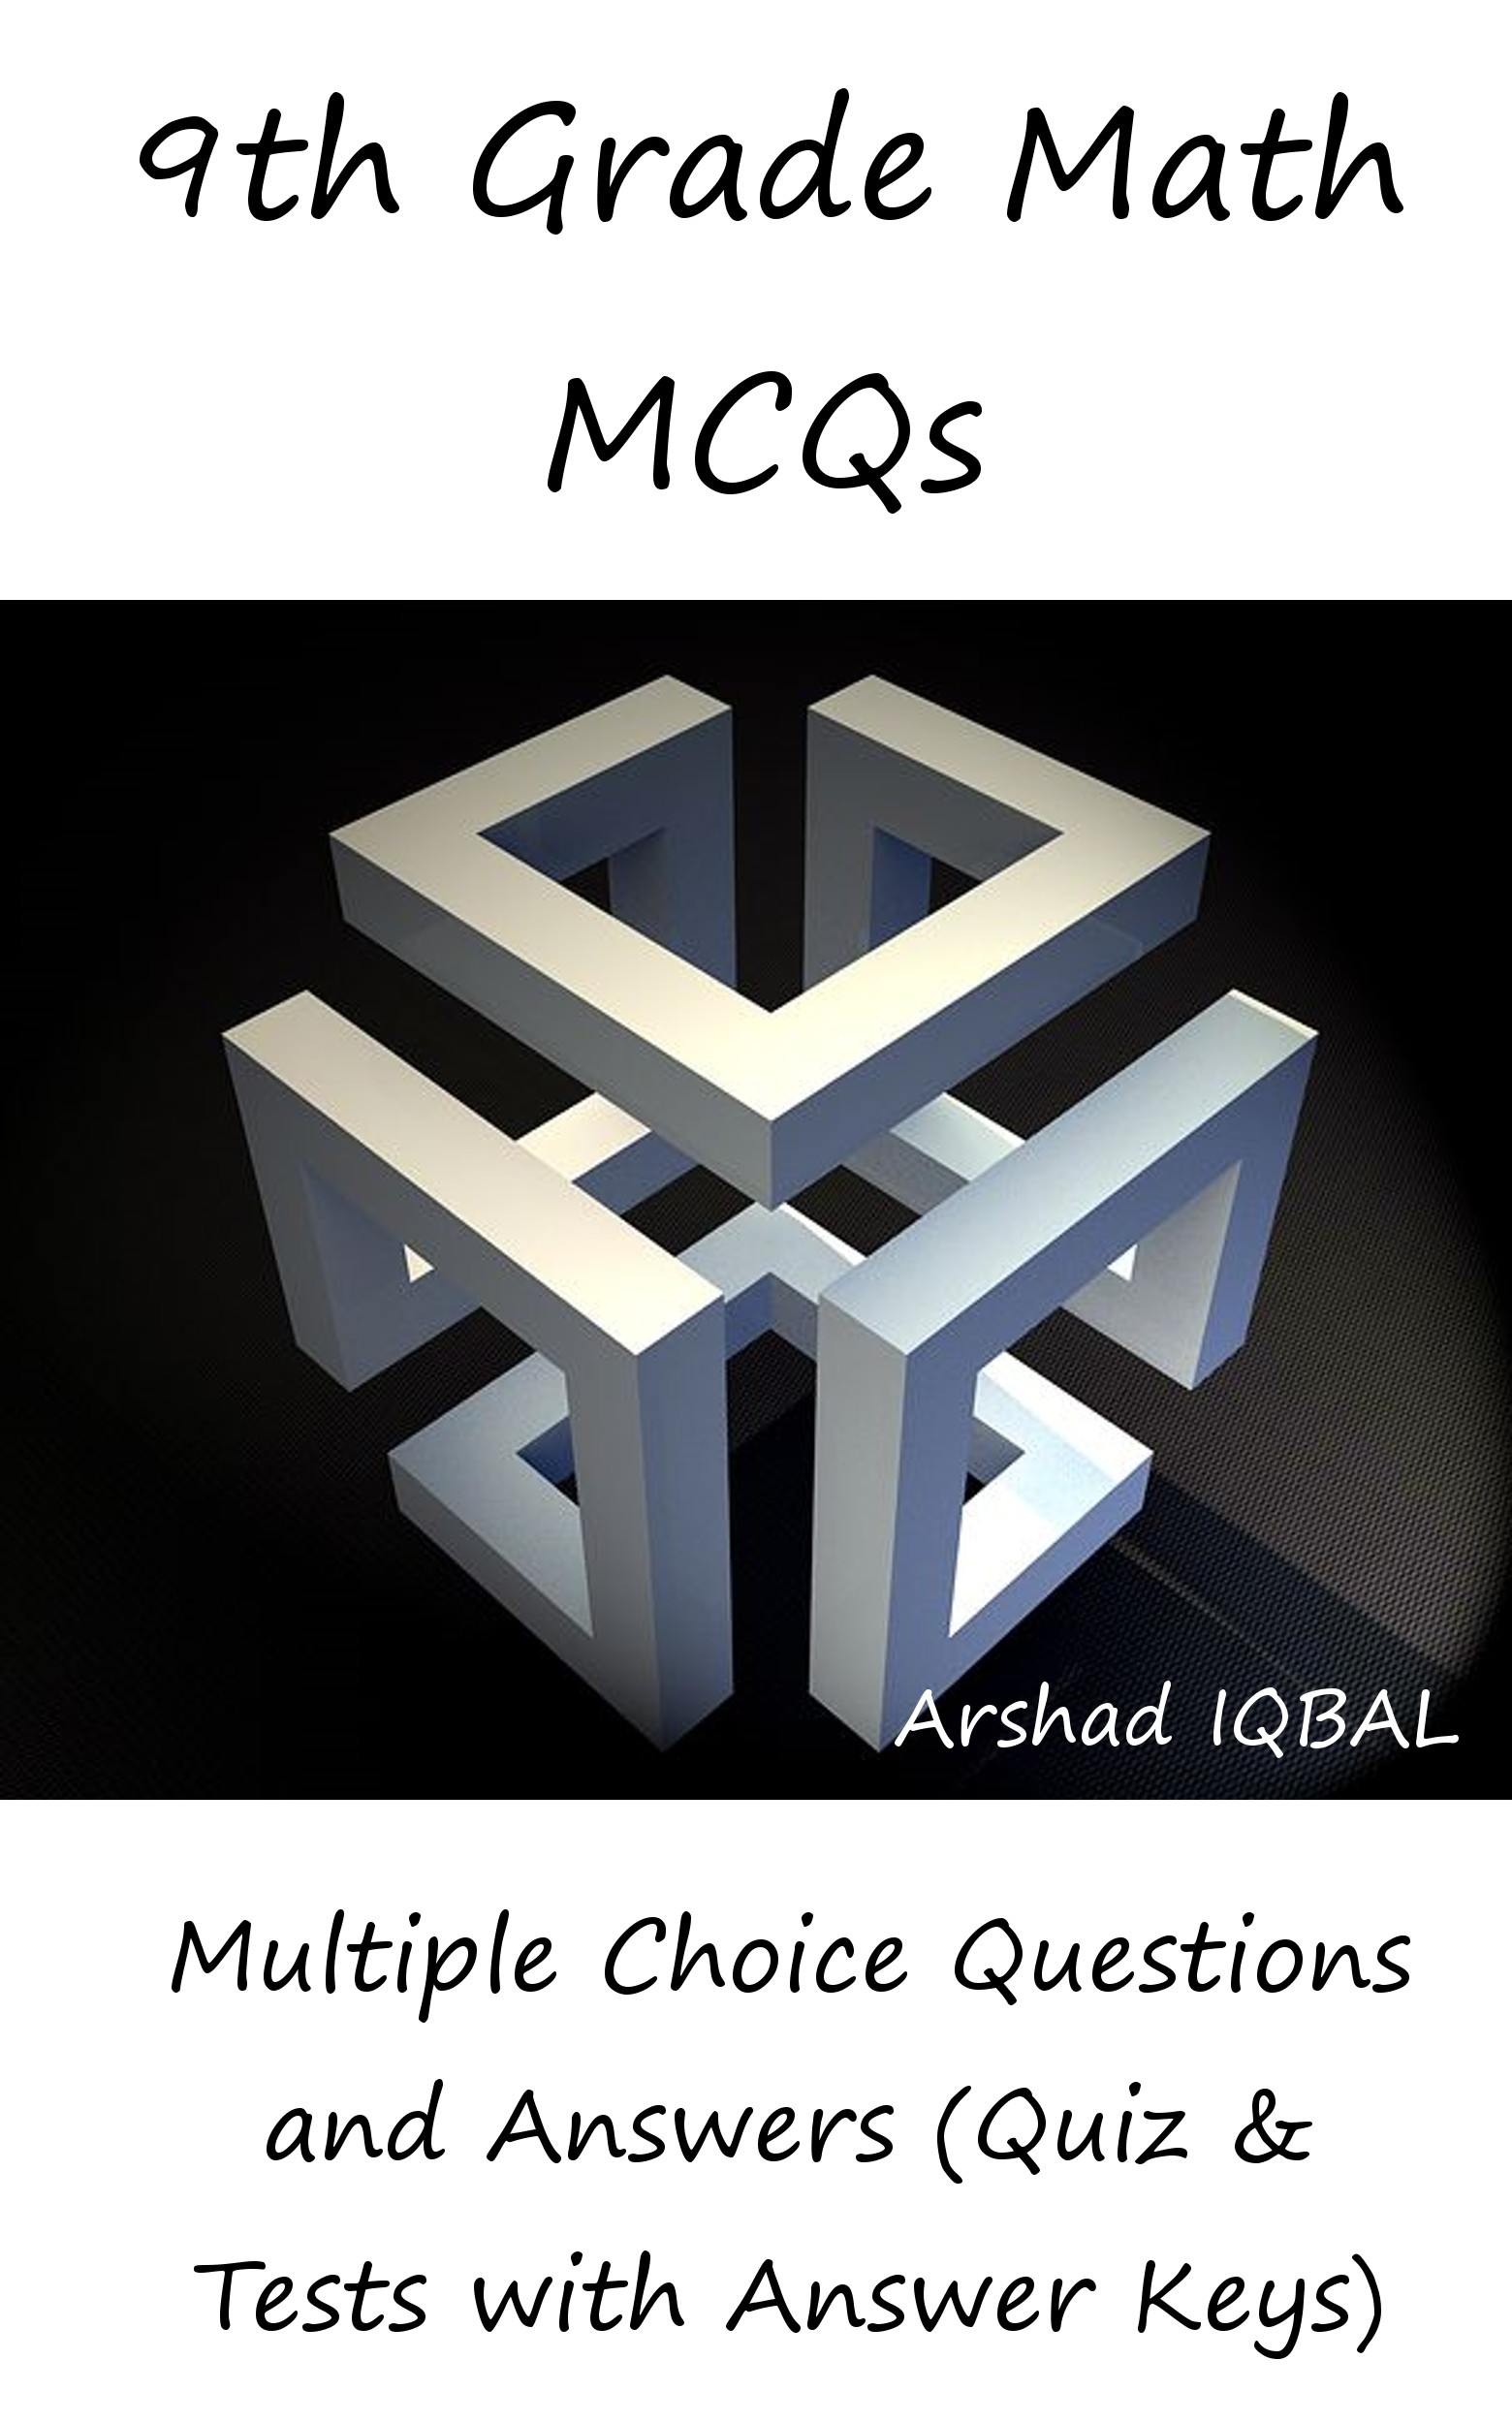 9th Grade Math MCQs: Multiple Choice Questions and Answers (Quiz & Tests  with Answer Keys), an Ebook by Arshad Iqbal